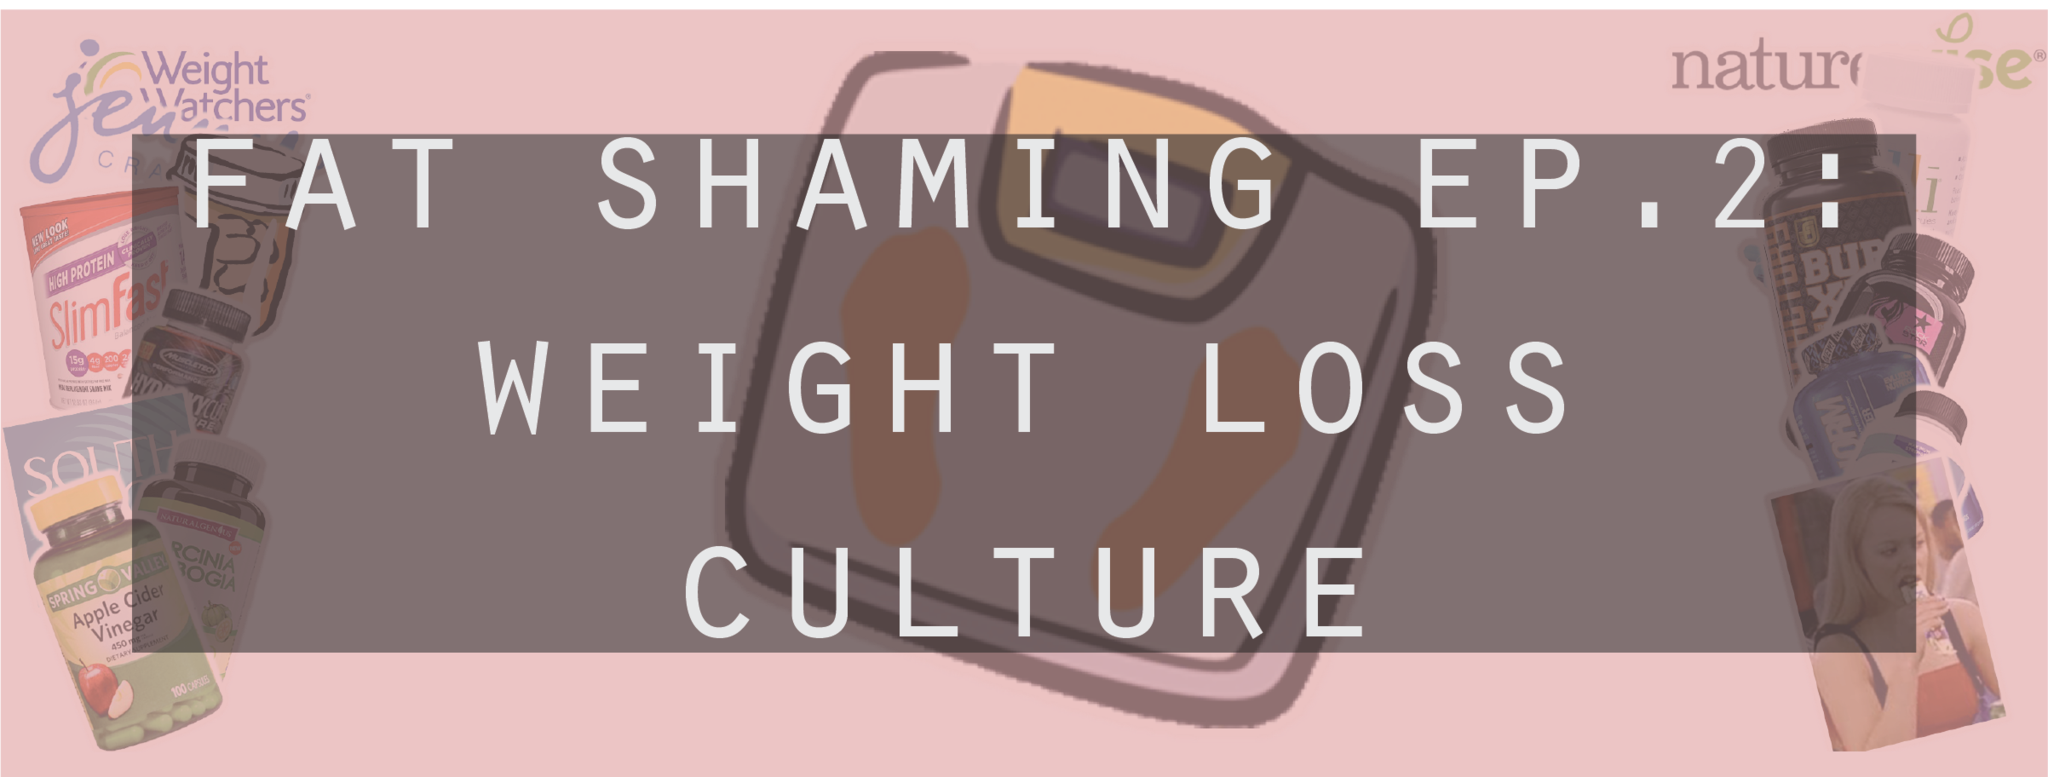 Fat shaming episode loss. Weight clipart weight room